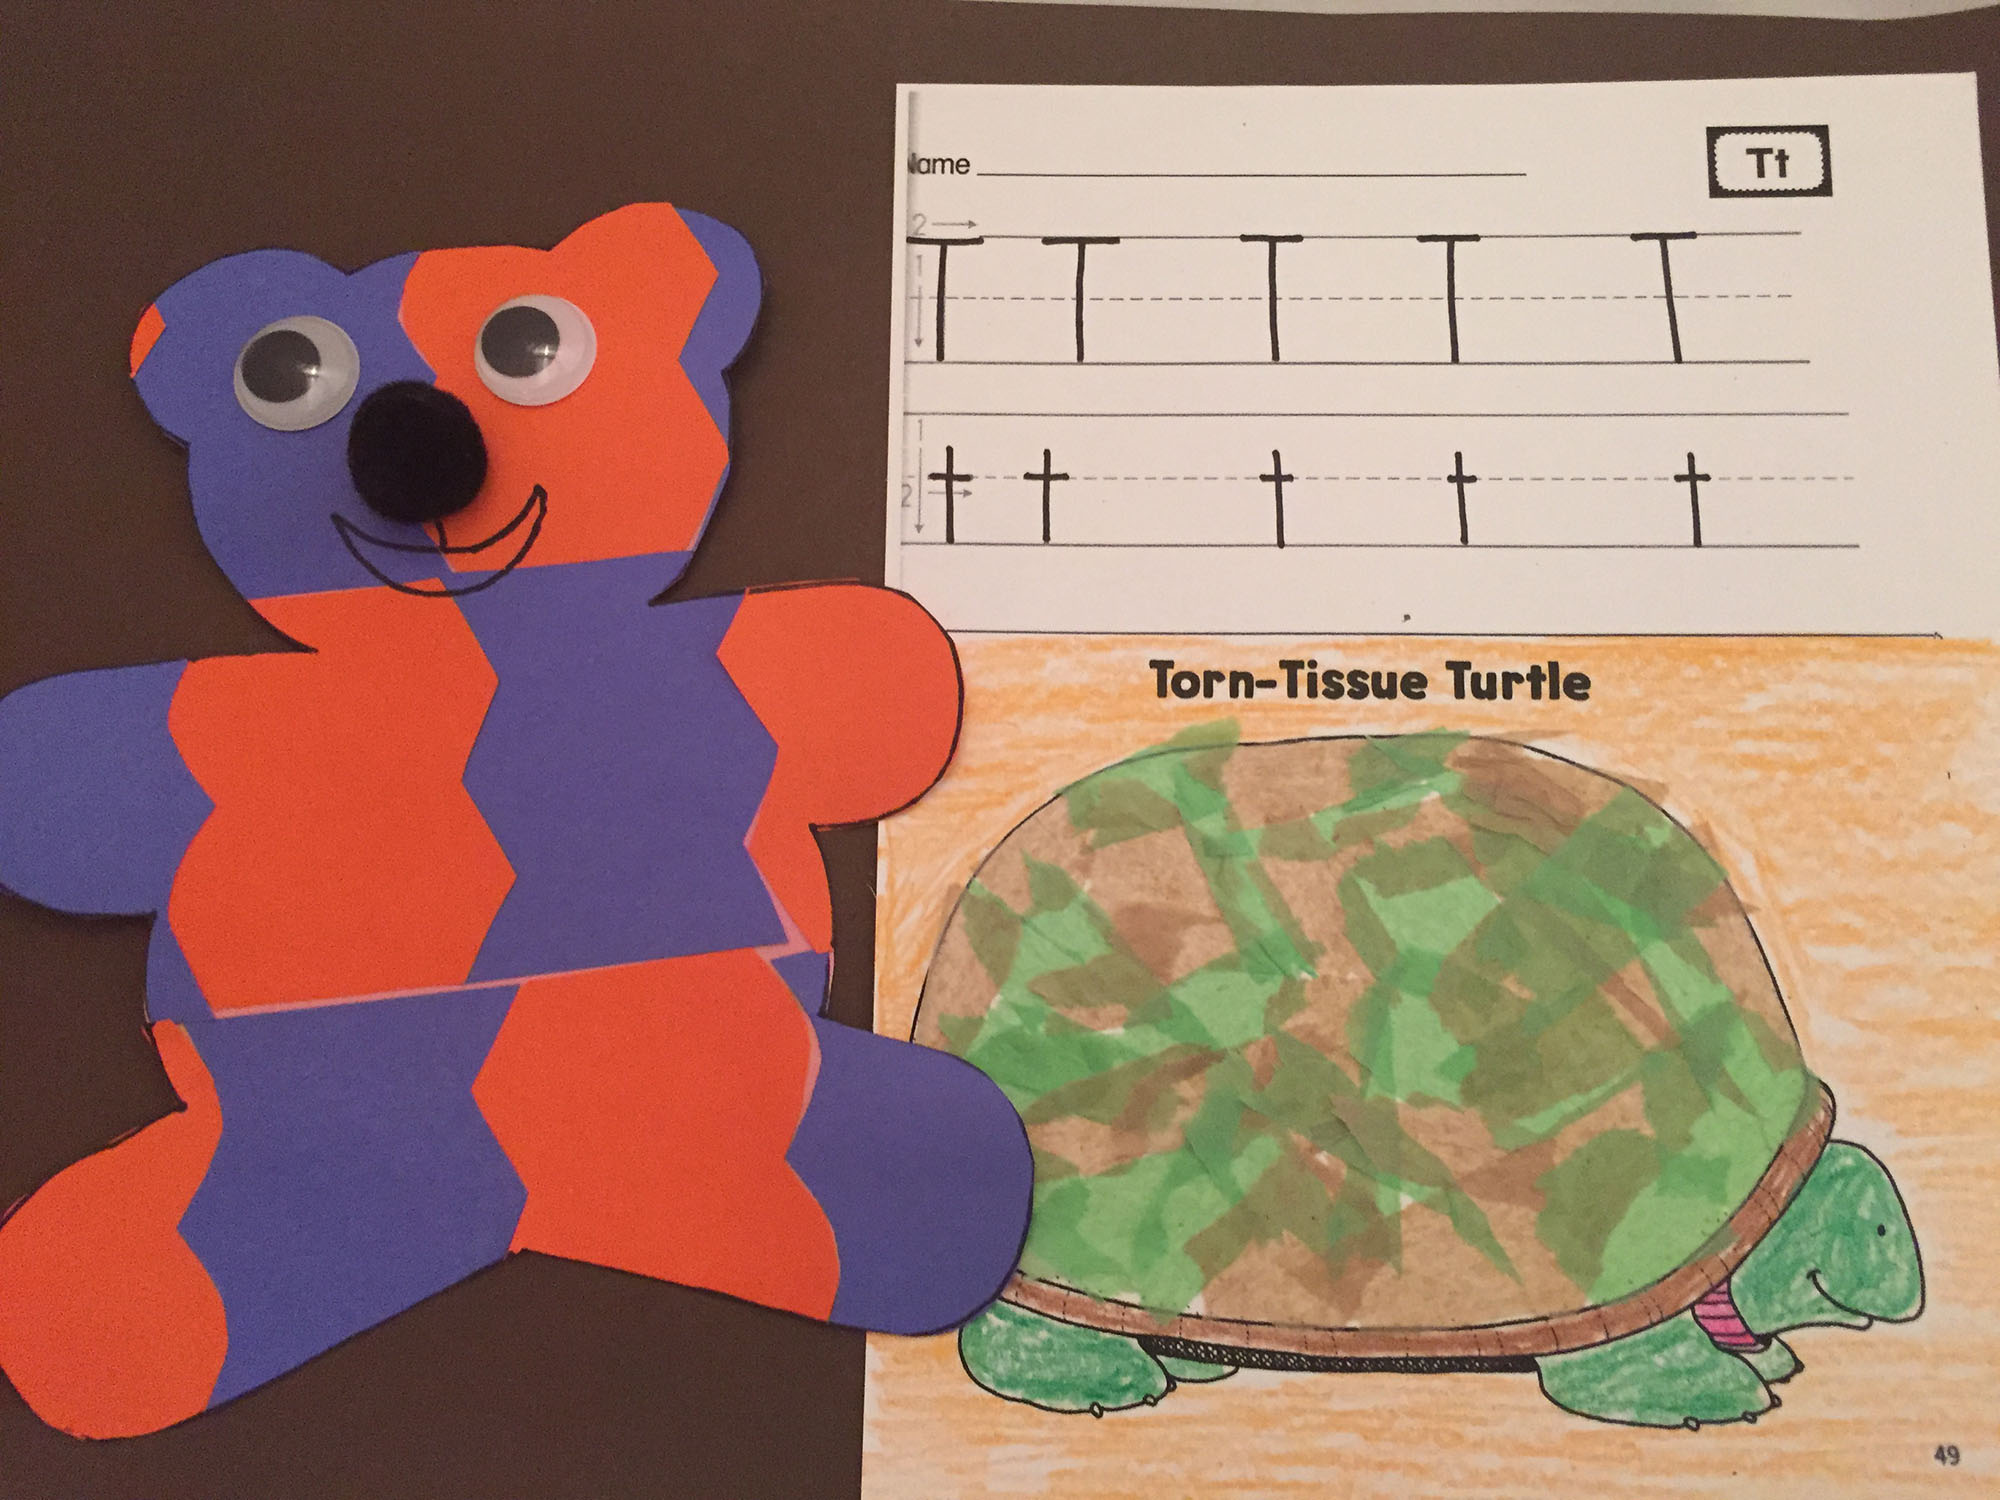 Tessellated Teddy and Torn-Tissue Turtle